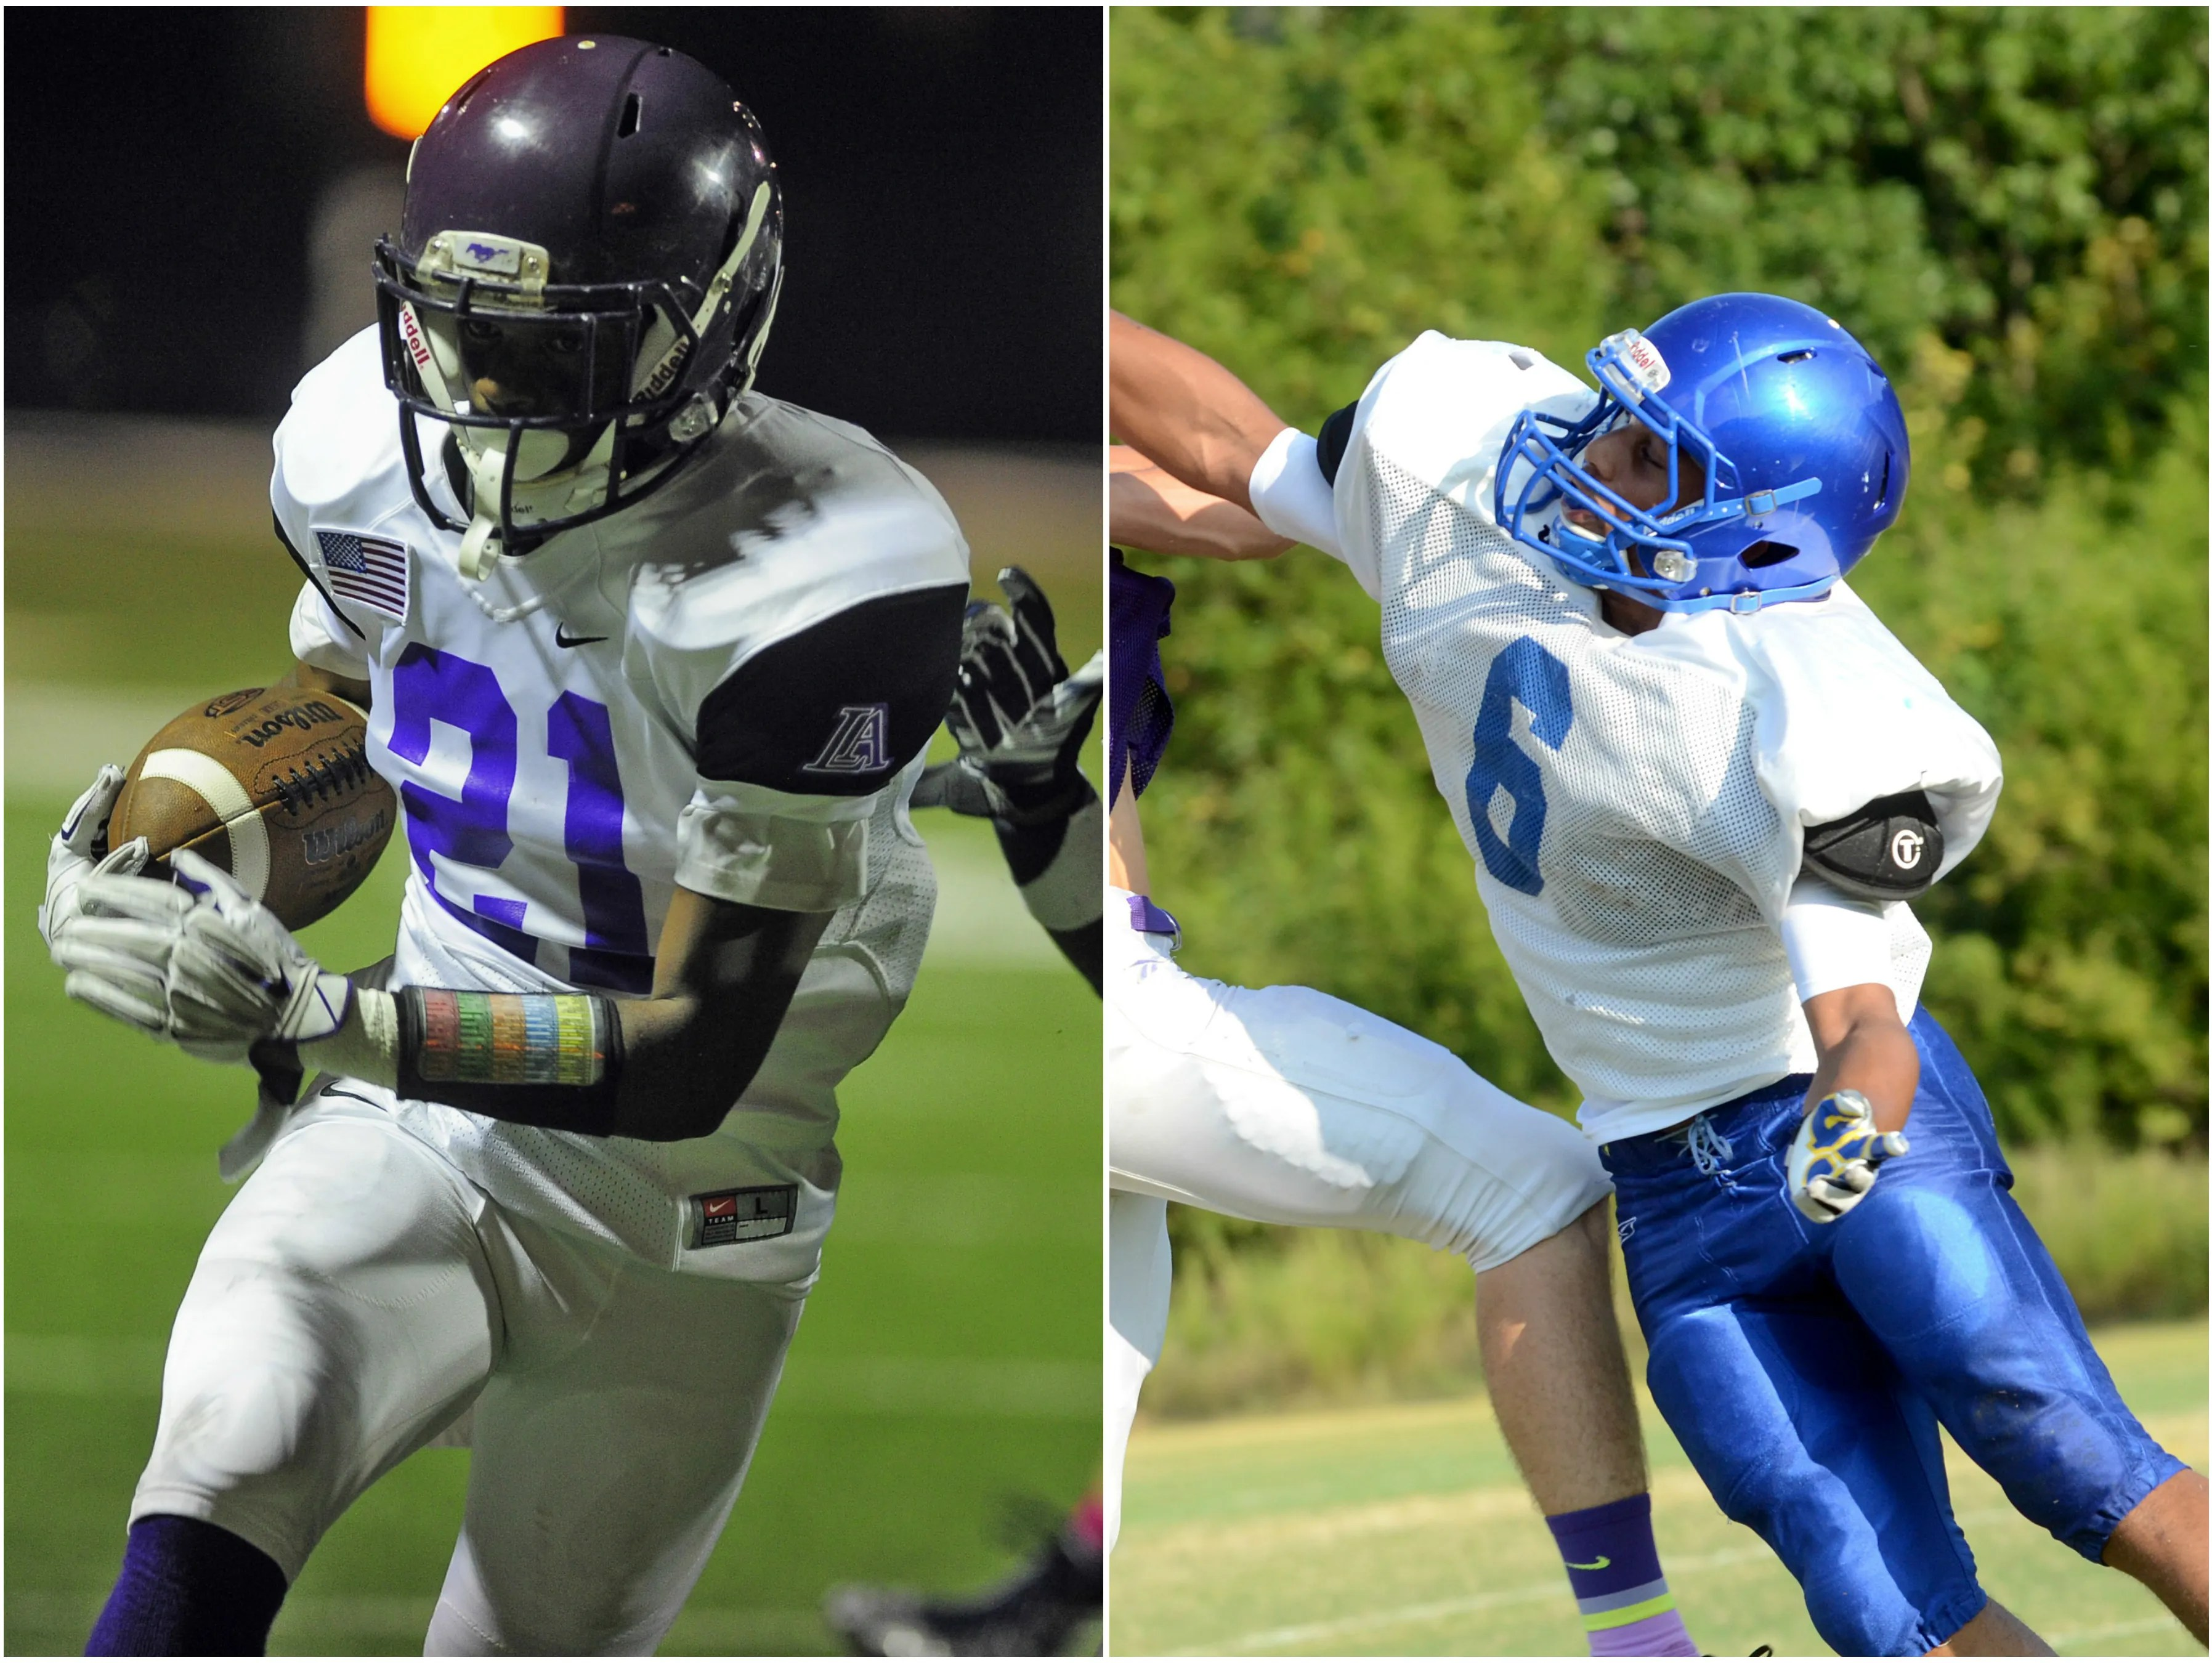 Lipscomb running back William Phillips (left) and Goodpasture running back Jermaine Mason (right).